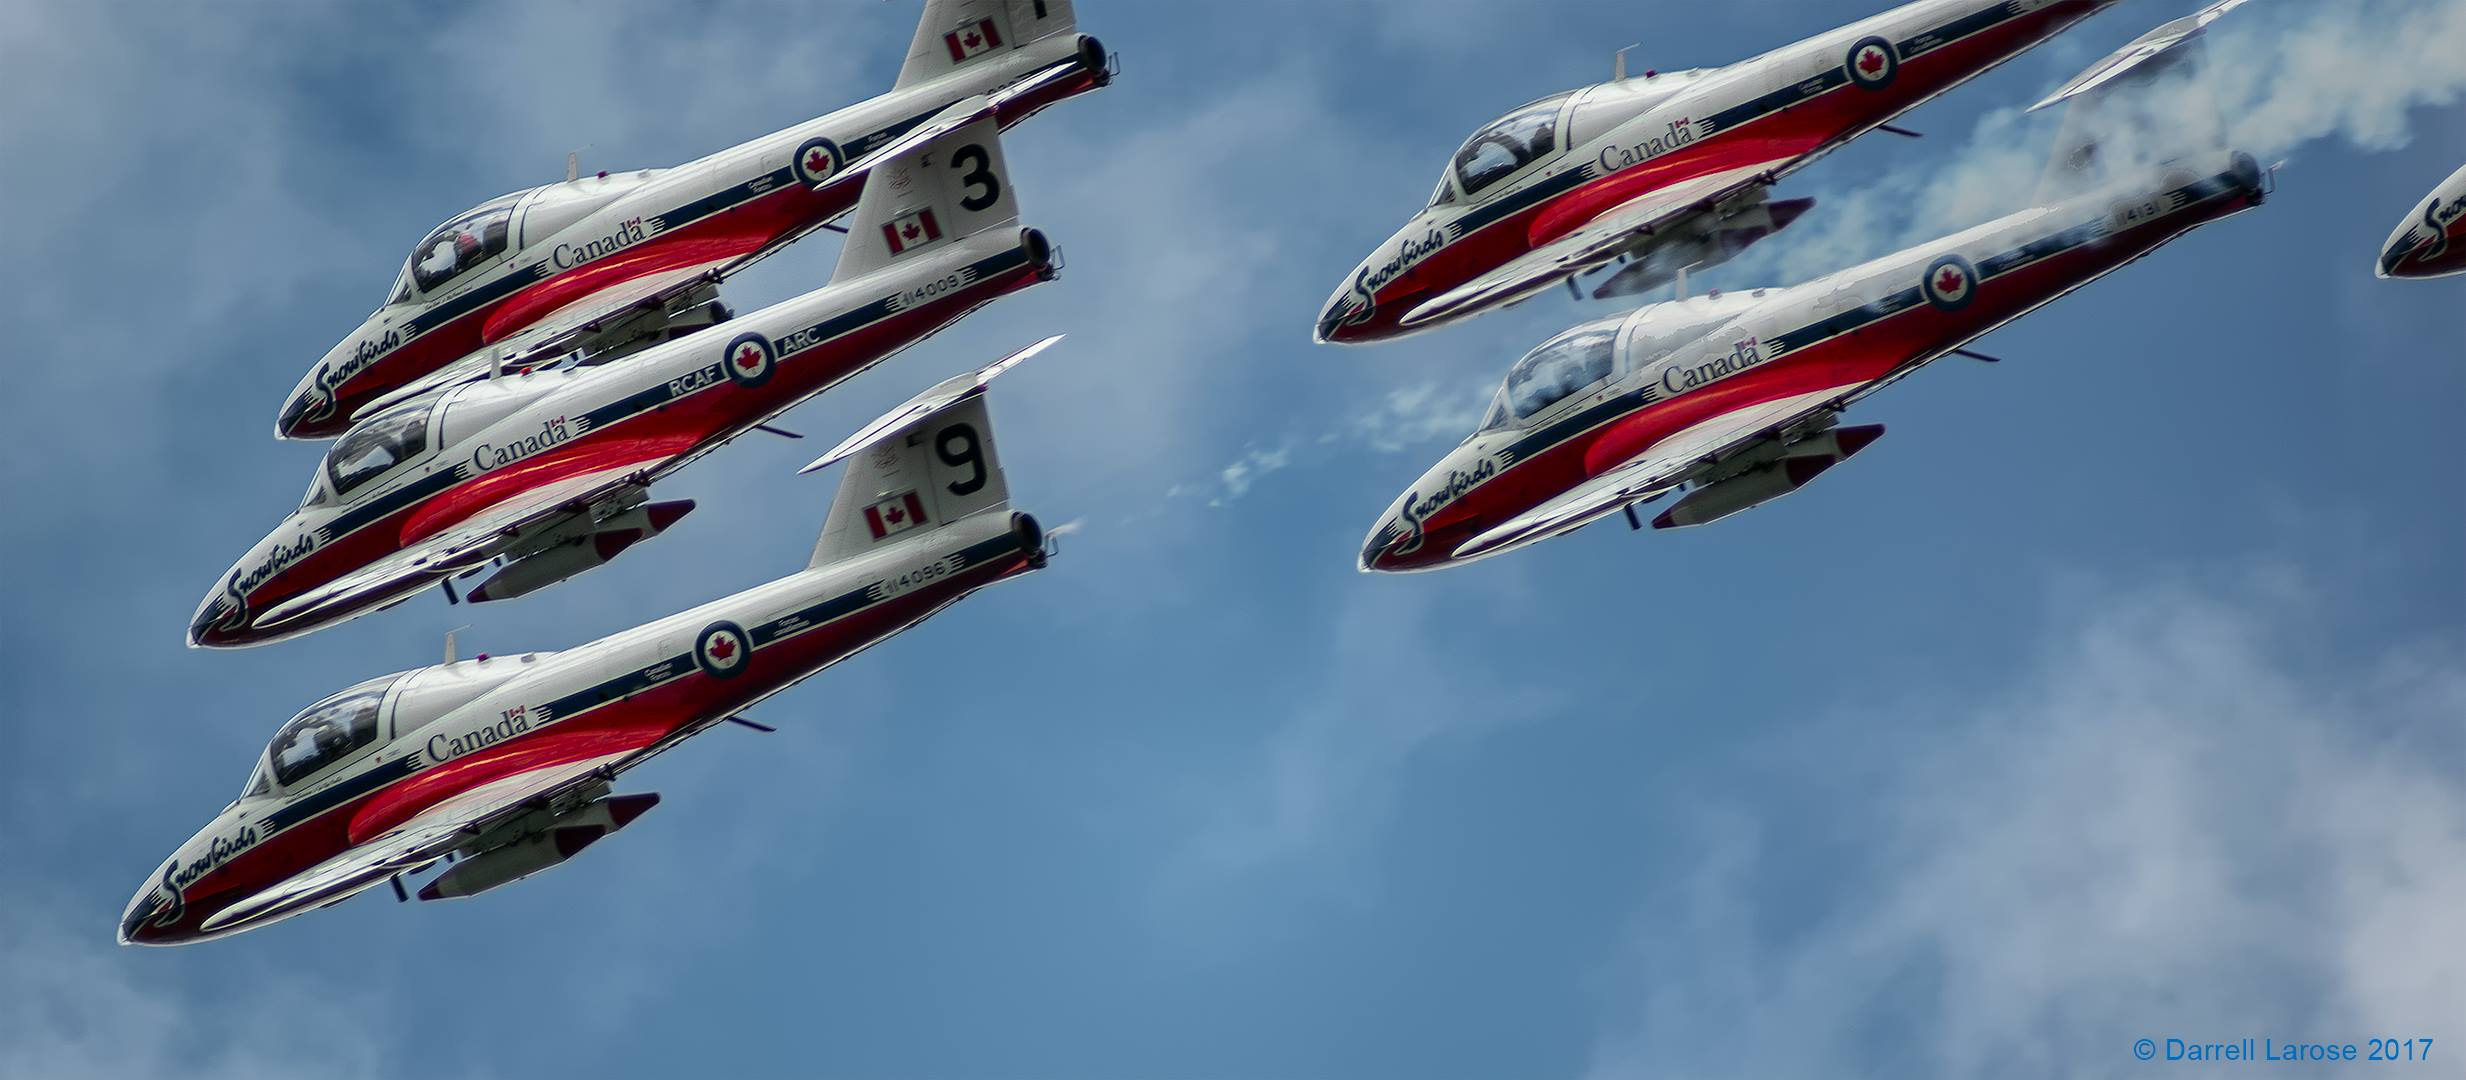 The Canadian Forces Snowbirds pass over Parliament Hill in Ottawa in July, 2017.